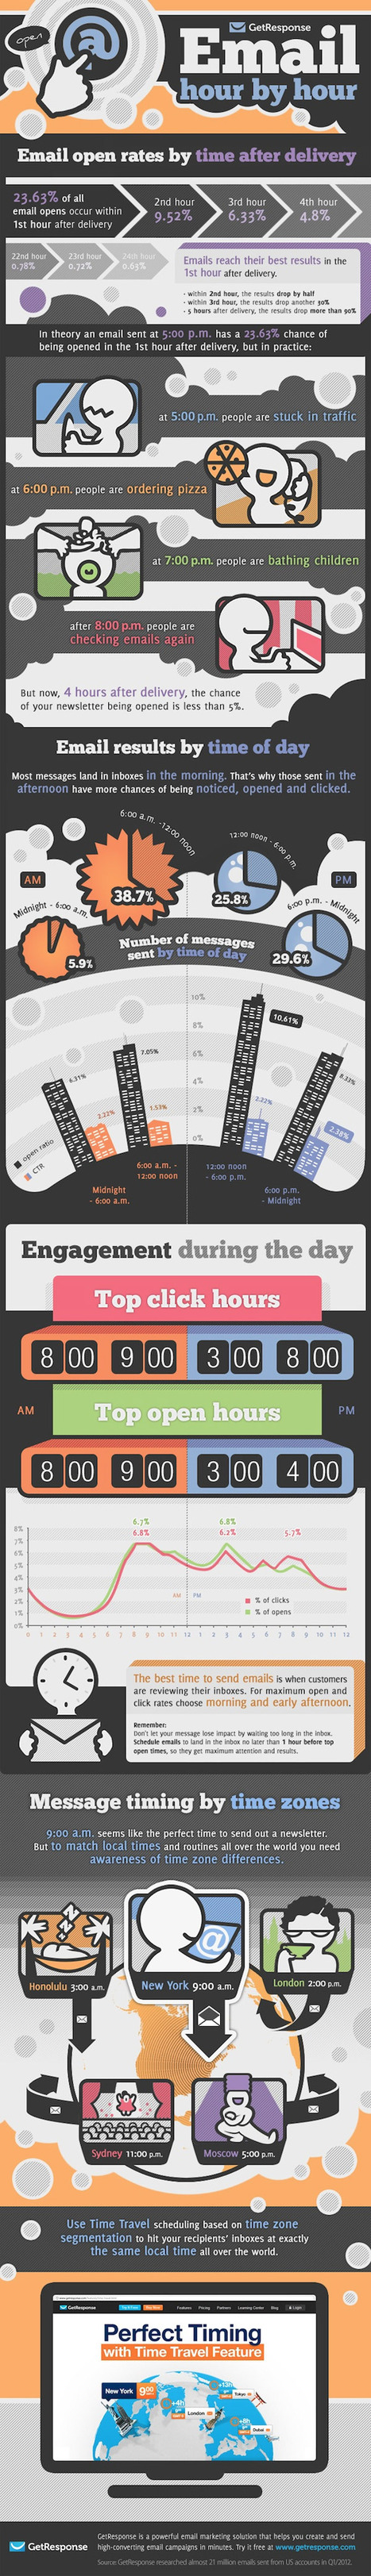 The Best Time Of The Day To Send Emails [INFOGRAPHIC] | Dyslexia, Literacy, and New-Media Literacy | Scoop.it